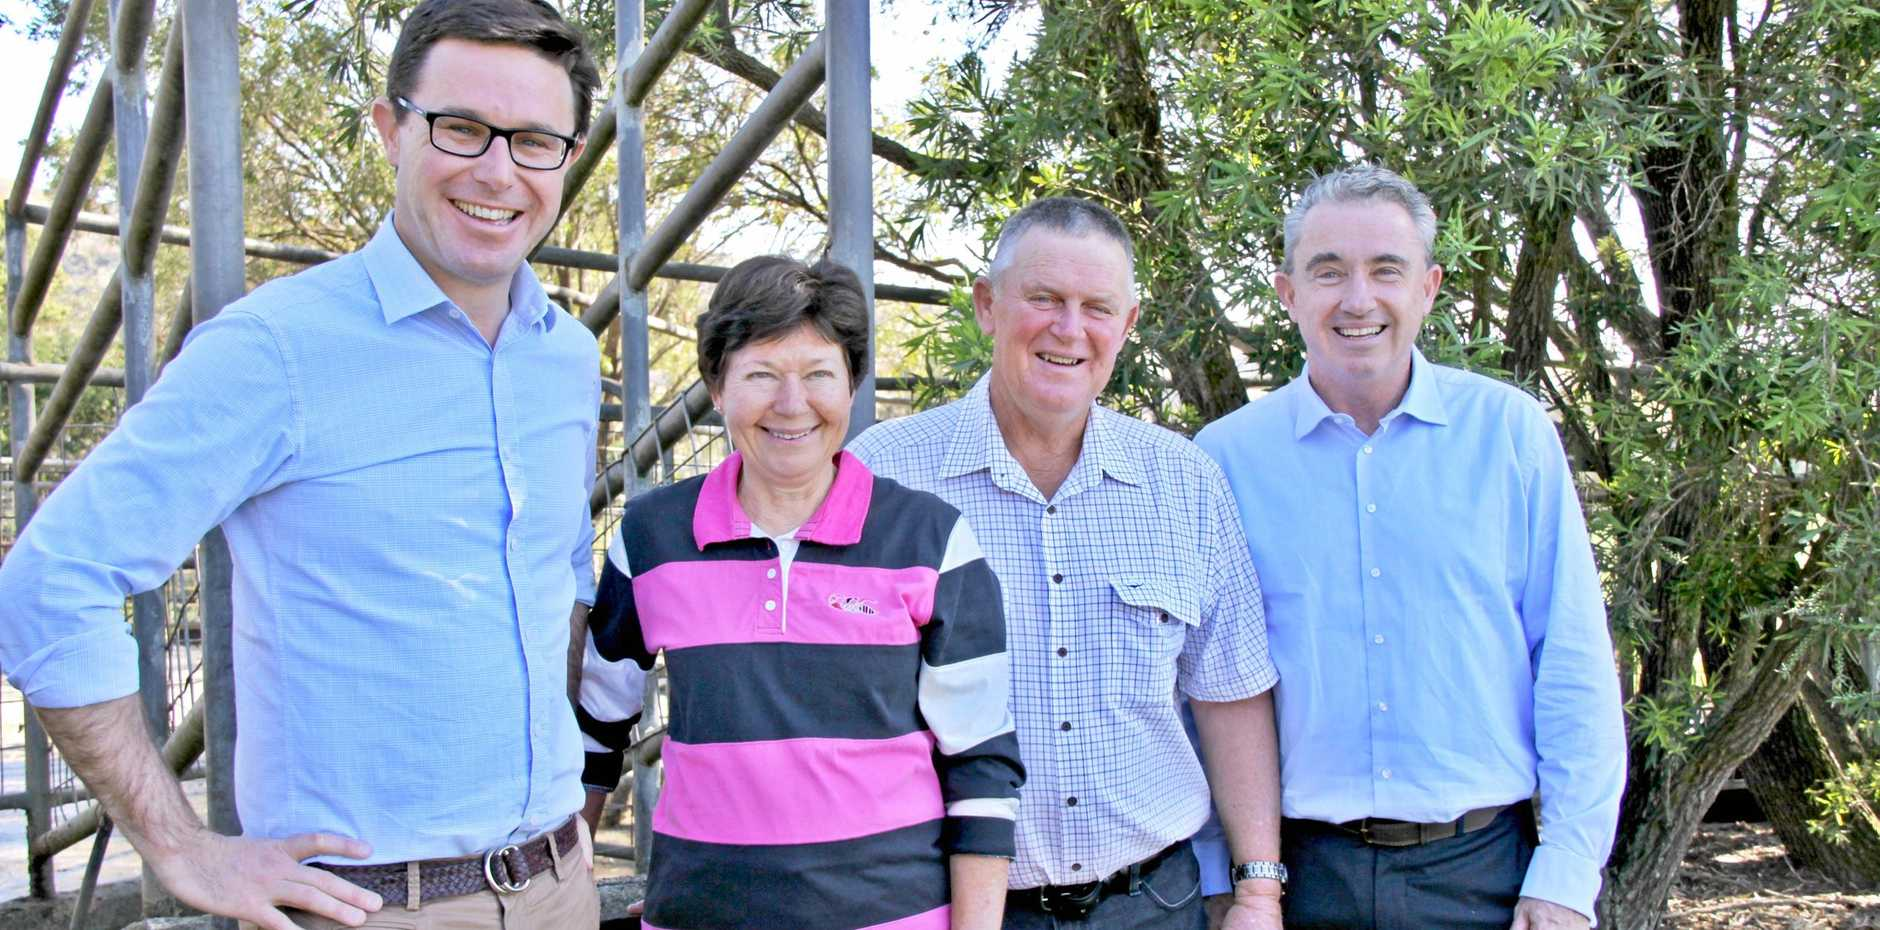 DAIRY FUNDING: The Minister for Agriculture and Water Resources David Littlewood, met Bexhill dairy farmers Eileen and Craig Waddell as he and Kevin Hogan MP made an announcement for $480,000 funding for Dairy Australia to look at sustainable farming practices.